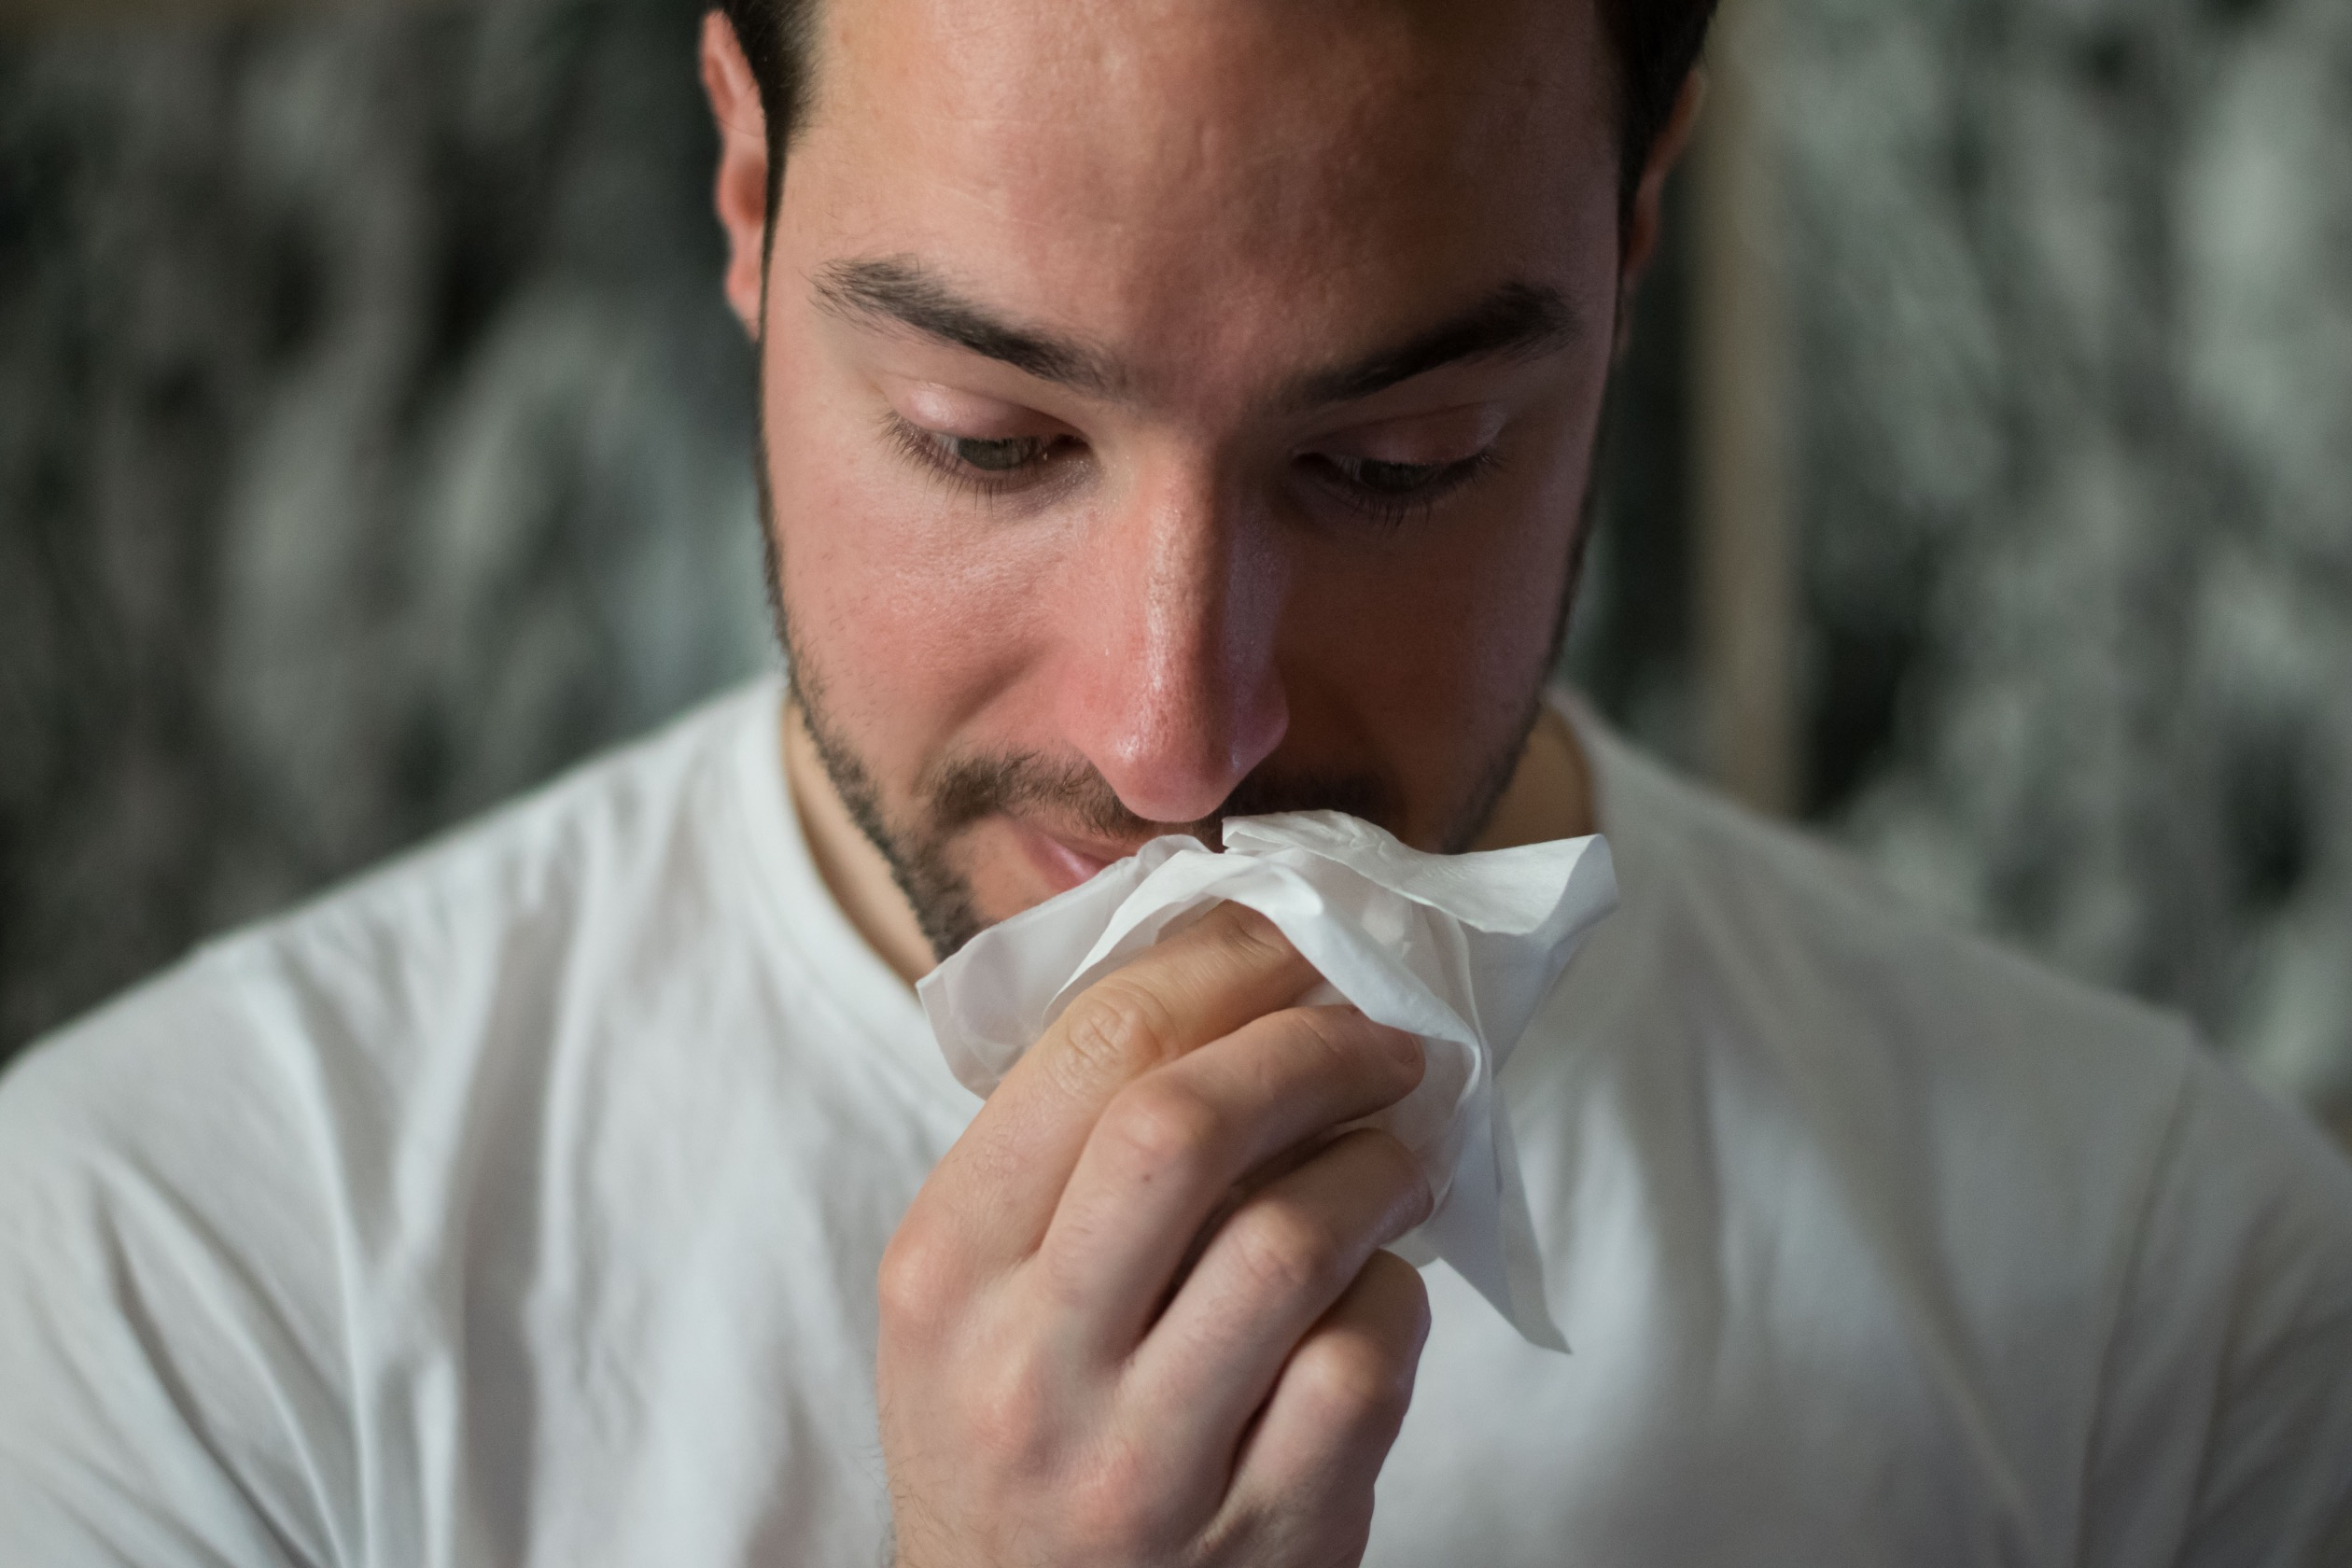 A man holding a tissue to his face while looking downward.